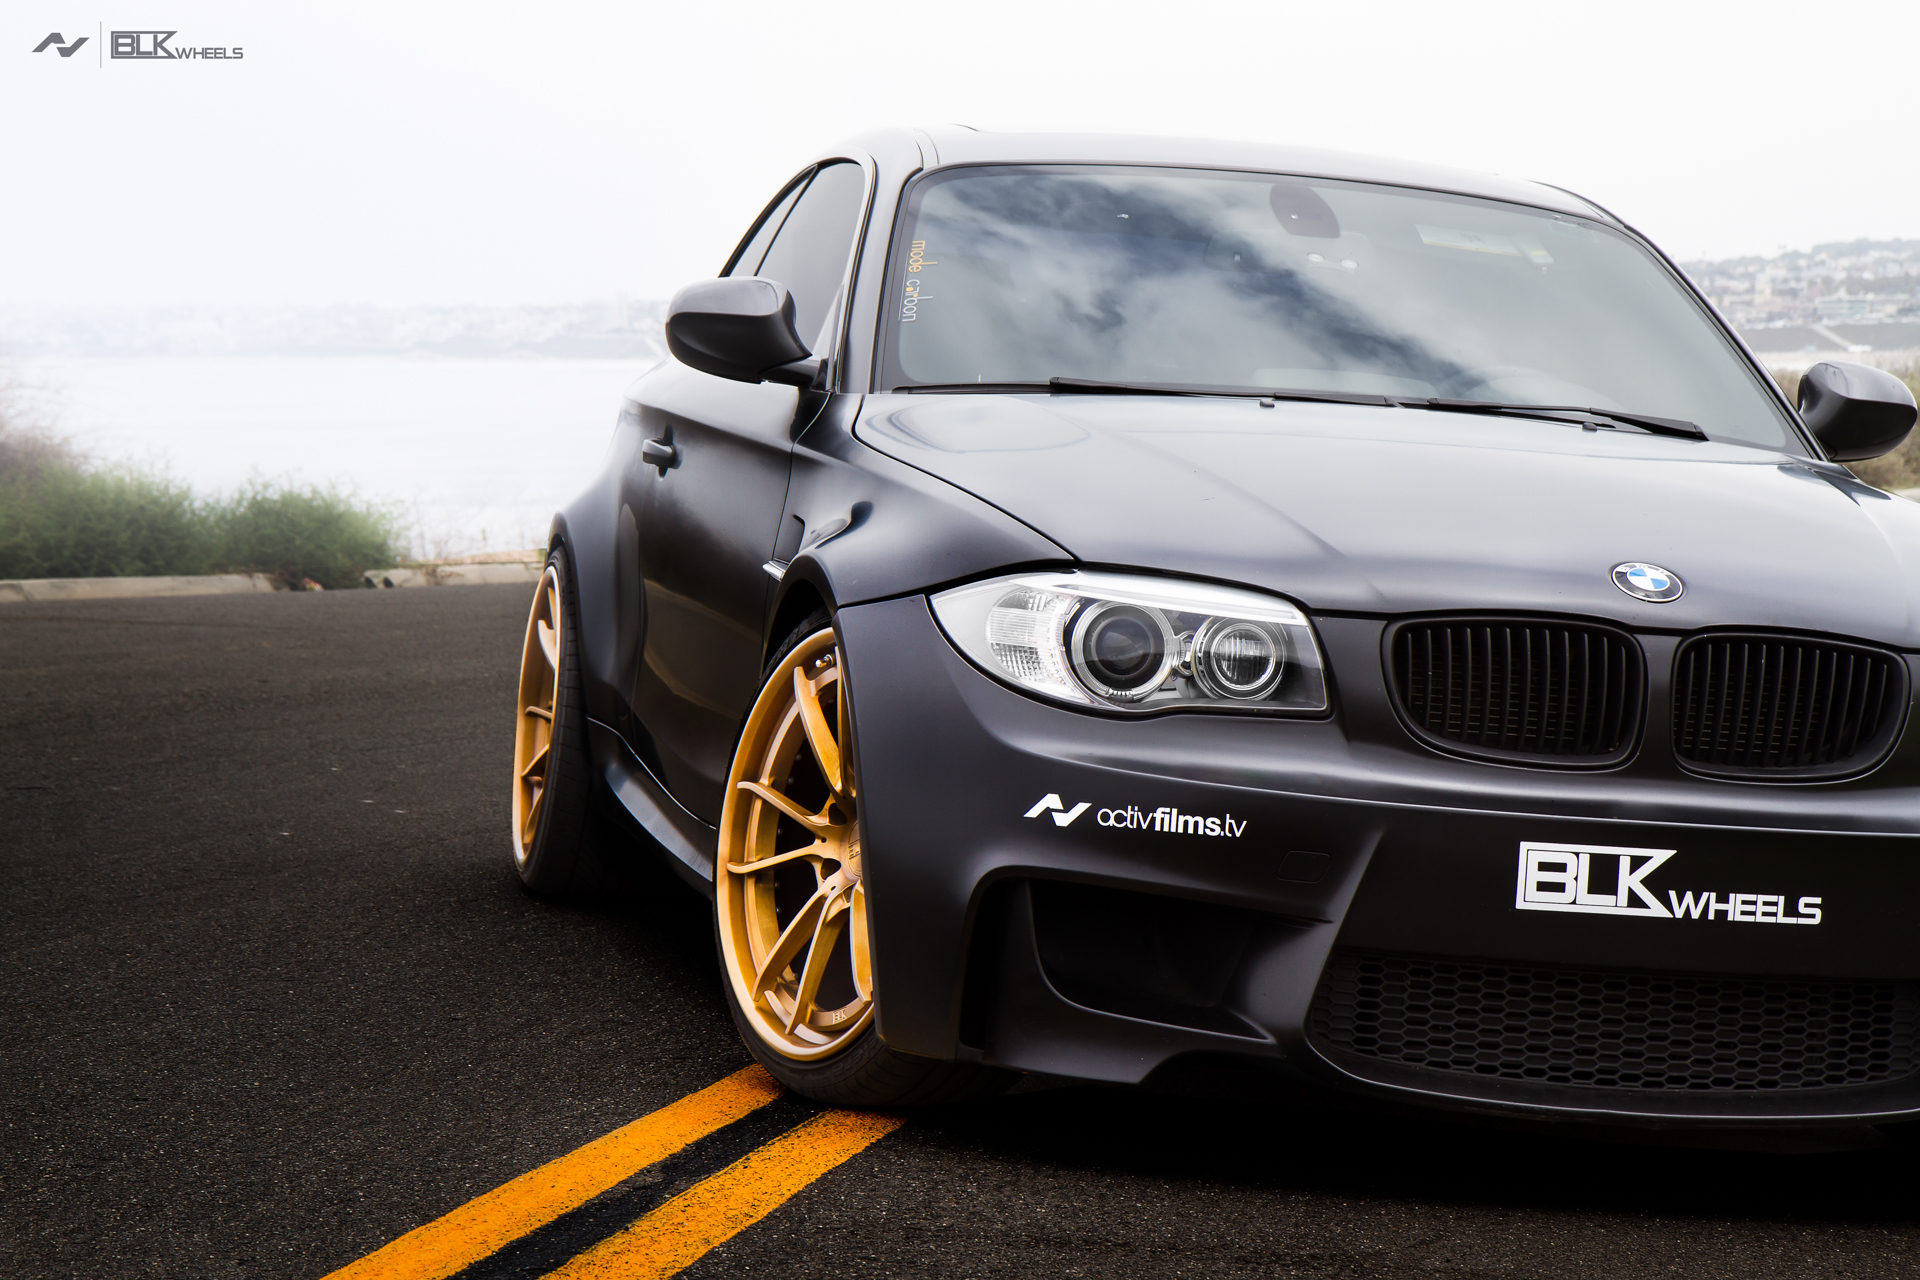 Bmw 135i By Activfilms Tv Stiri Bmw Tuning Bmw